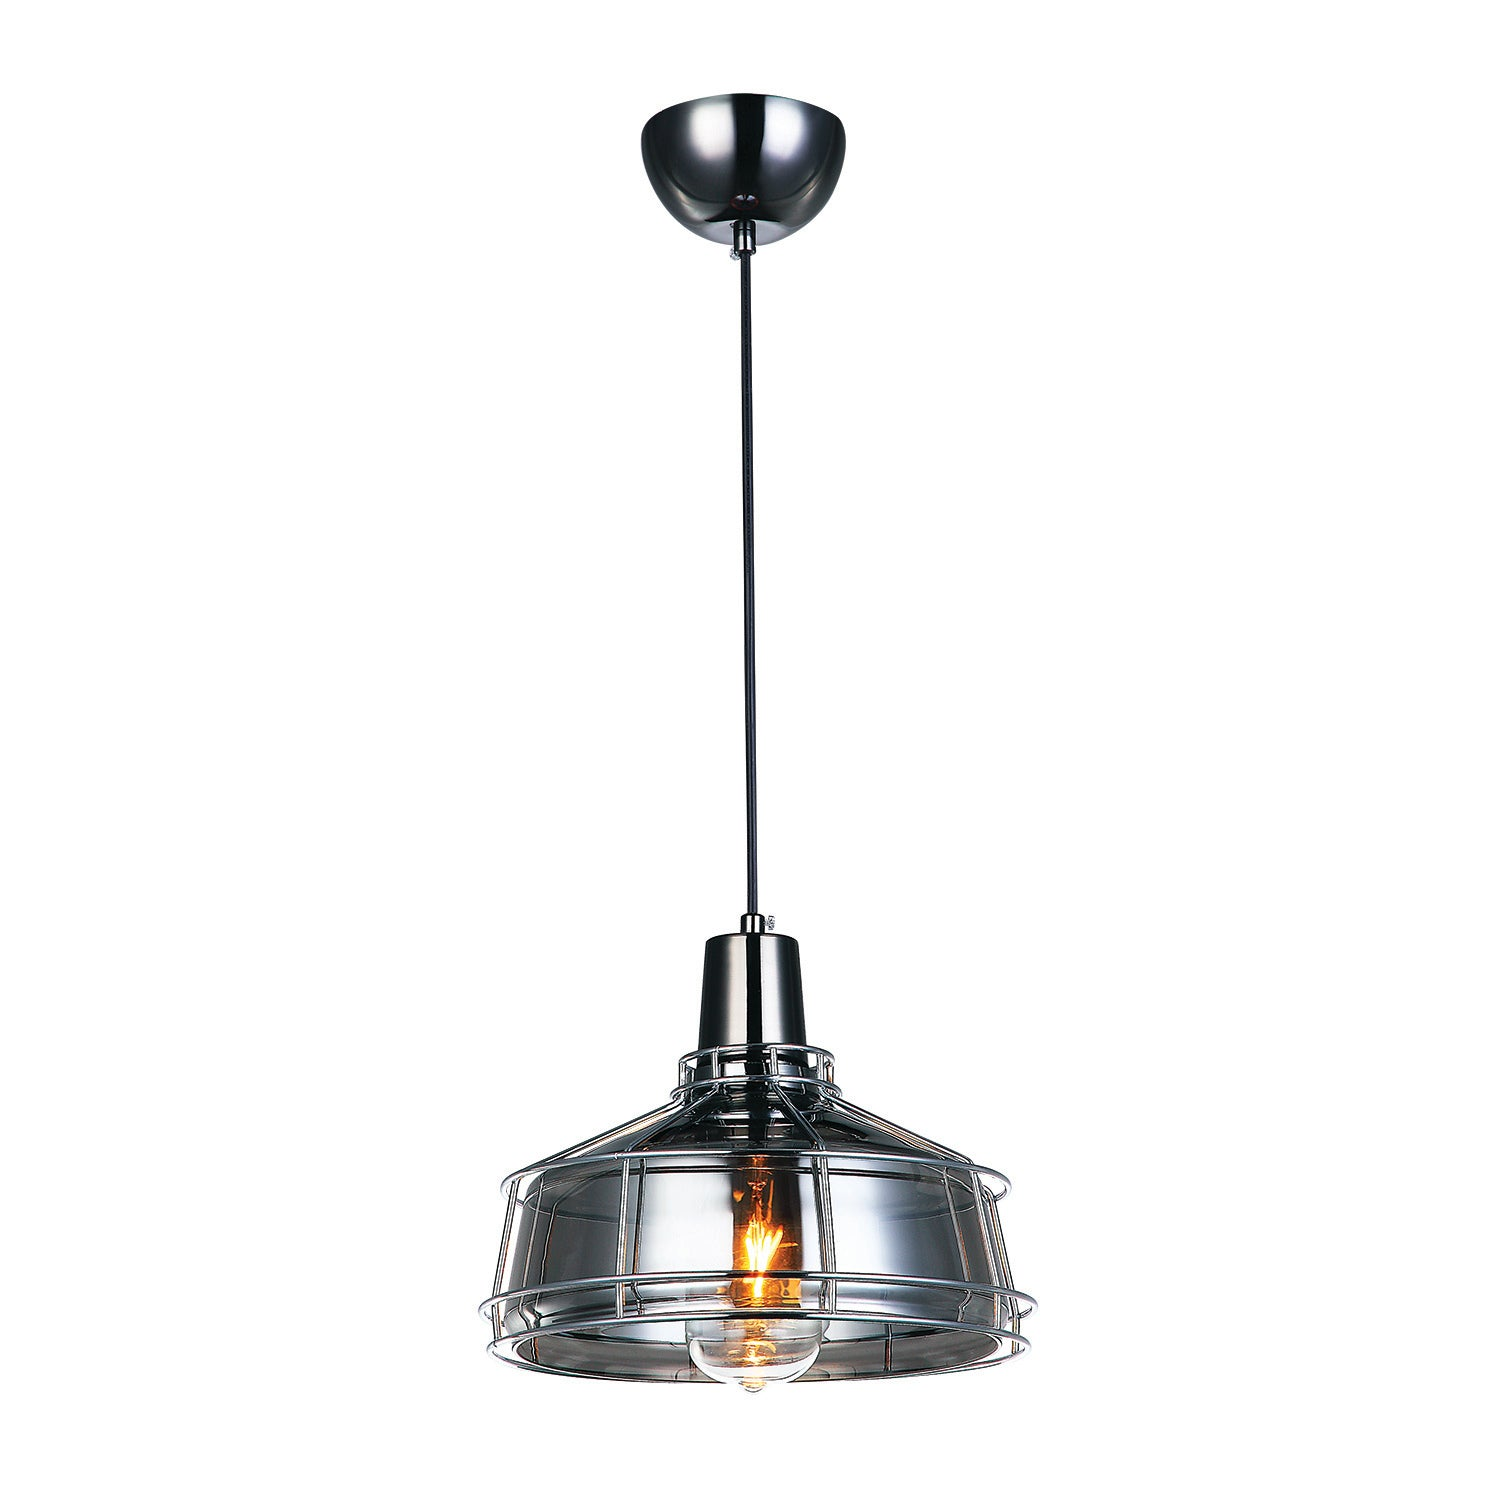 Brixton Smoke Glass Ceiling Light